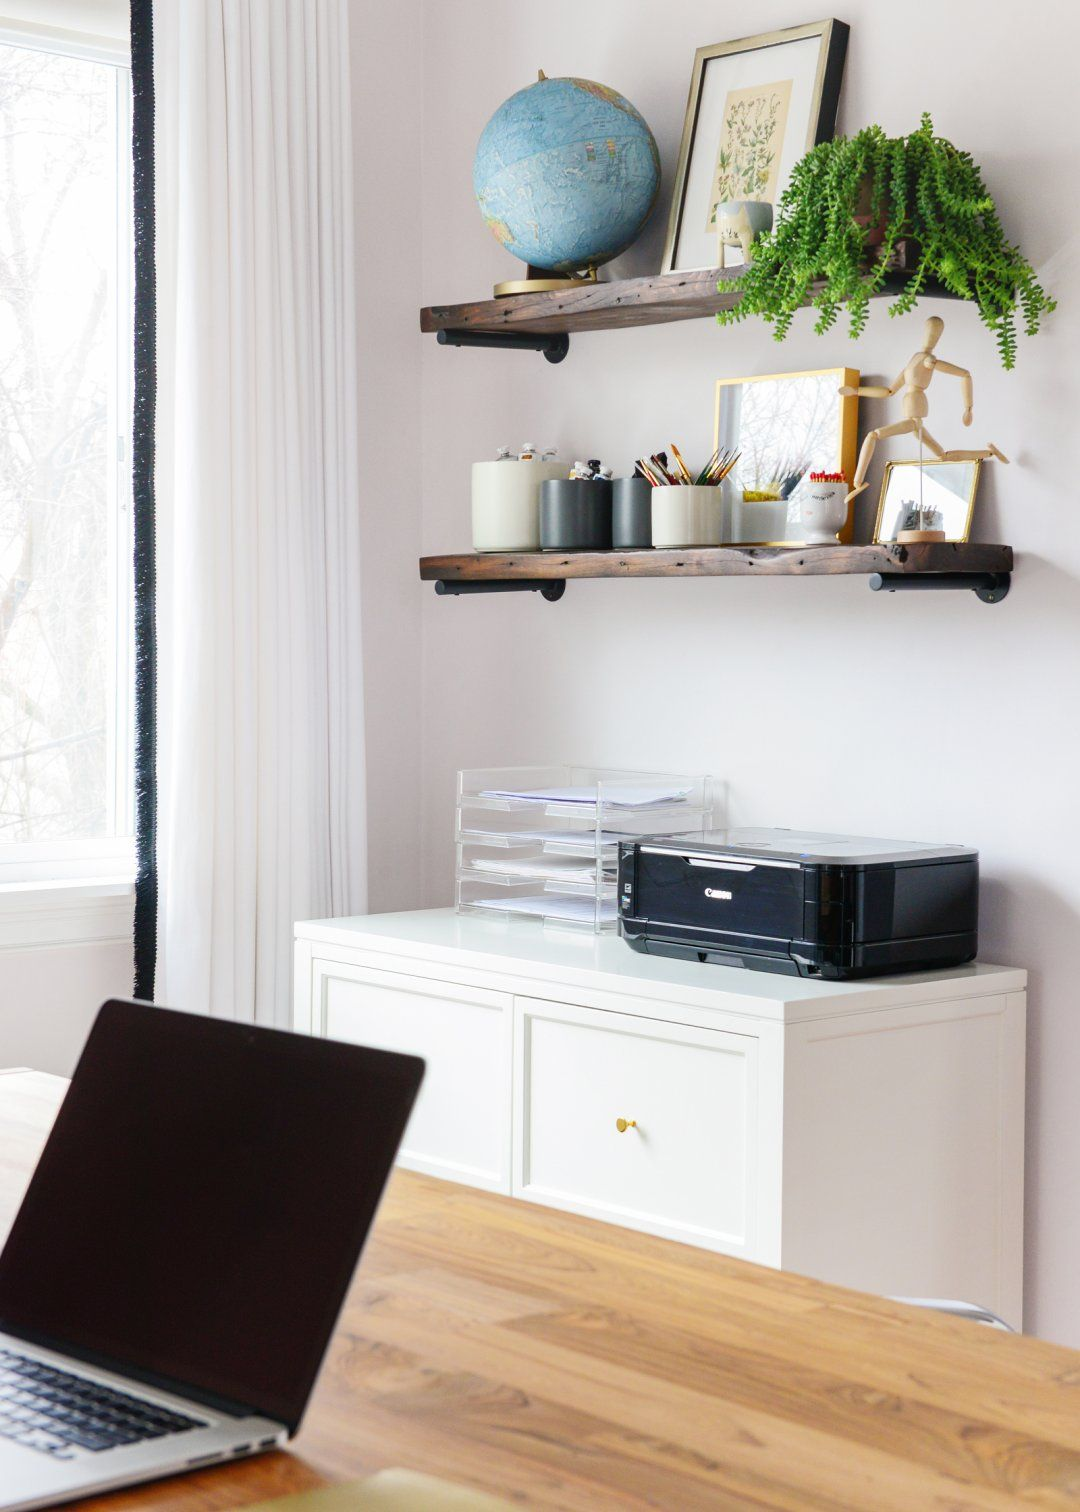 Home Office Organization Ideas | Shelf display, Paint supplies and ...